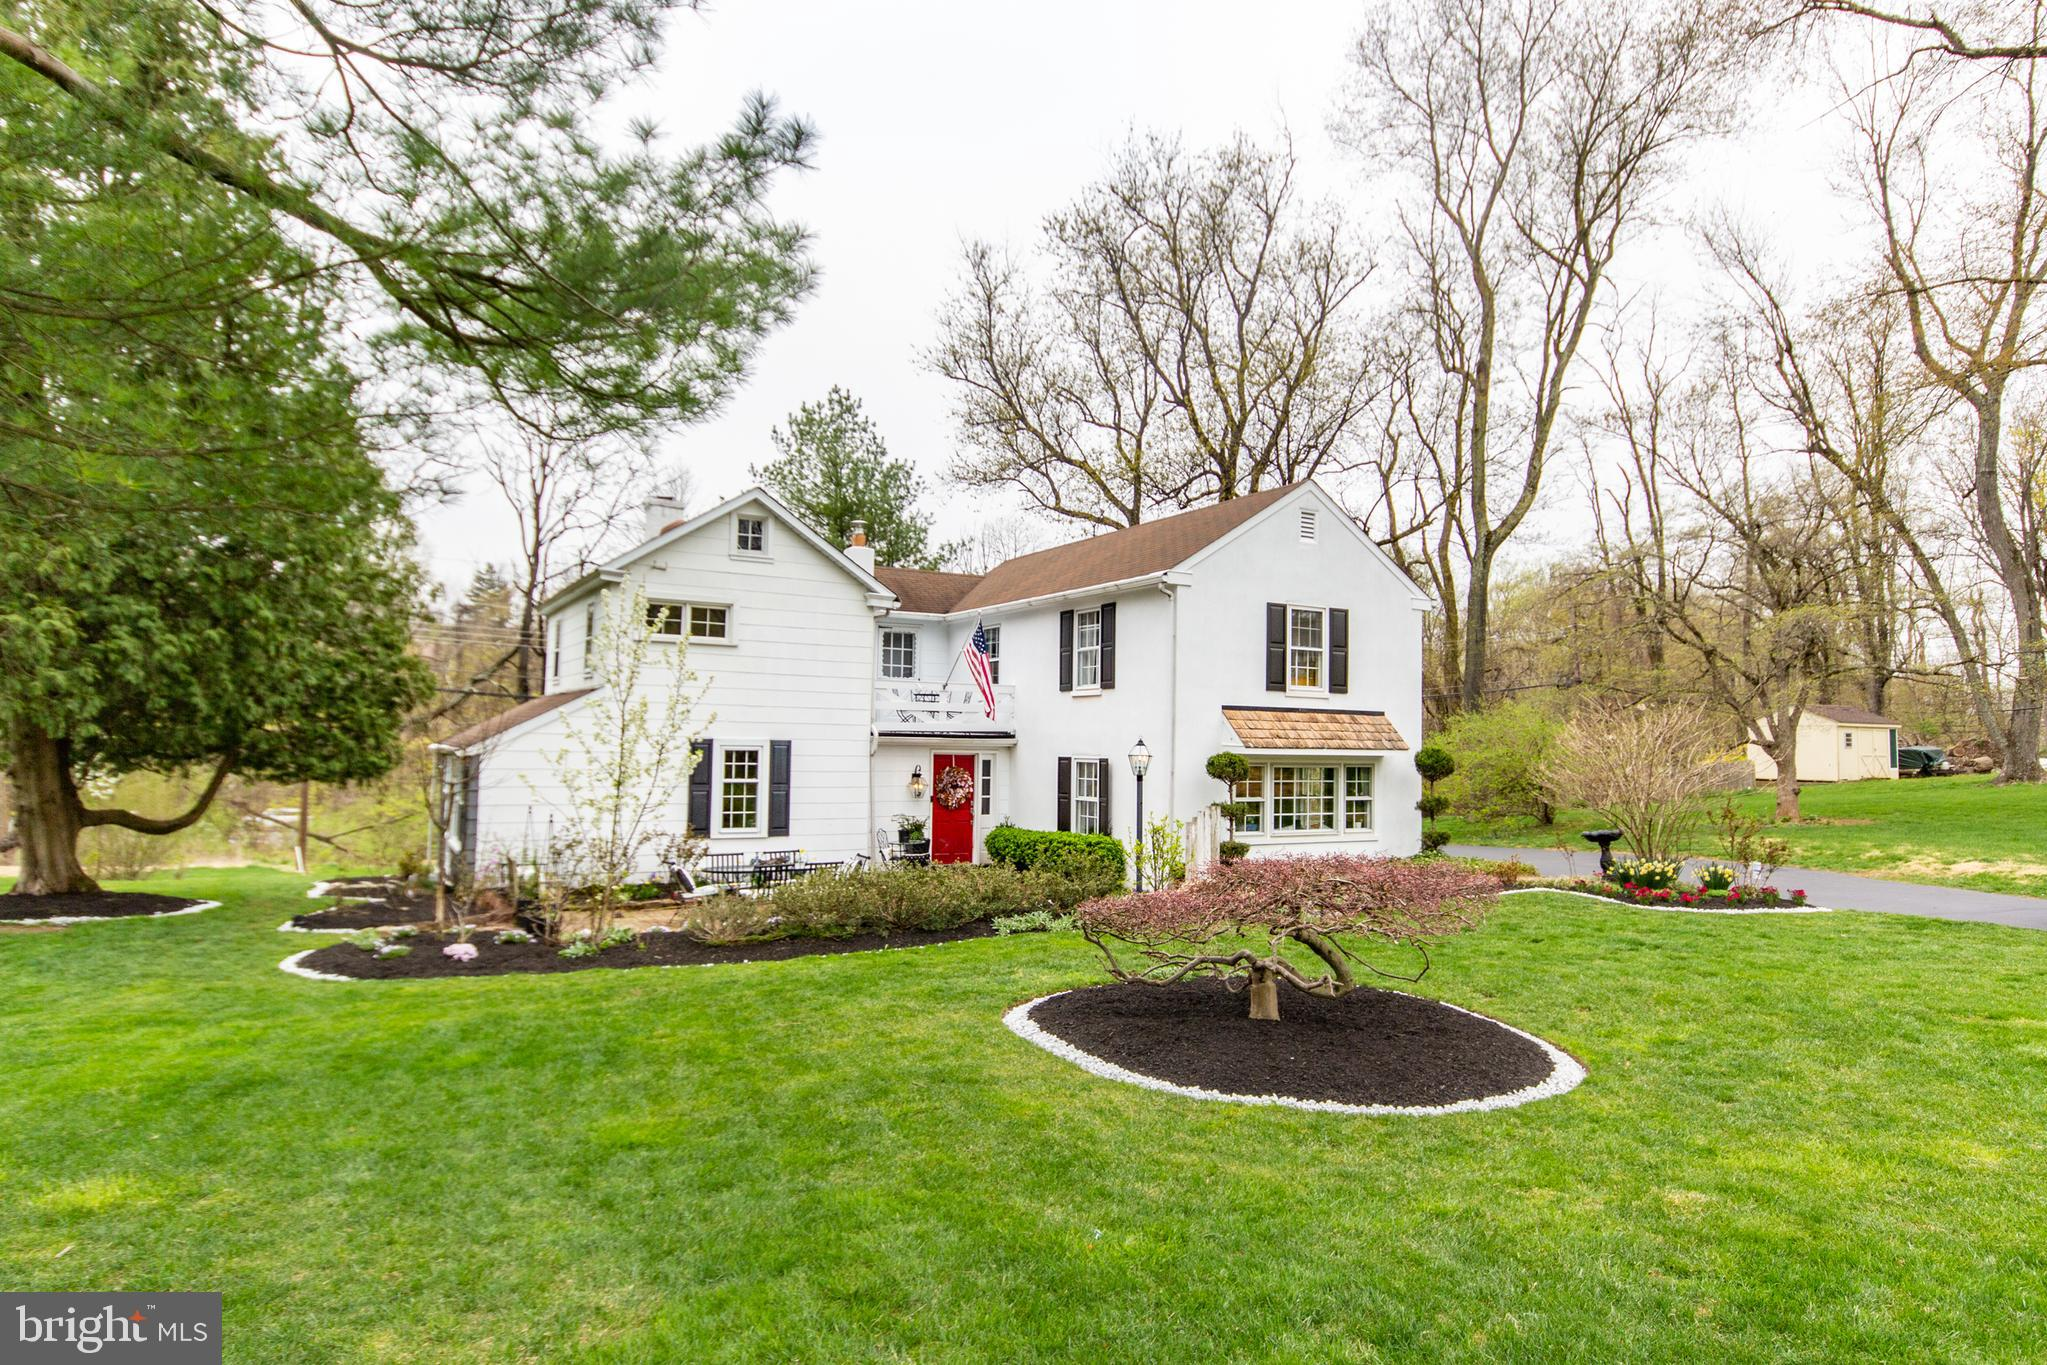 Charming and warm, updated and historic, this home is the original Gate House to the estate at the top of the hill. Owner has put her own interior design expertise on many interior details! The stunning Kitchen was remodeled in 2020 and features Quartz counters, tile back splash and newer stainless appliances. The exterior was painted in 2020, new flooring added in Kitchen and Living Room, electric panel updated, and so many other aspects of the home have been beautifully renovated. The Entry Foyer features reclaimed brick flooring from the 1700's from the Philadelphia Navy Yard. The owners discovered and left exposed 300 year old beams in the Family Room after removing an old horsehair and plaster ceiling! The Family Room features a Gas Fireplace with brick hearth and stone mantle, original Gate House windows and a pie stairway to the second level. The Living Room/Dining Room space is large and bright. There's a first-floor Powder Room, a Side Porch currently used as an office and a Bonus Room off the Kitchen that provides great storage. Upstairs are four good-size Bedrooms and two renovated full Bathrooms, one with a stall shower, the other with a tub/shower. The basement is partially finished and houses the Laundry and plenty of storage.  More storage is available in the walk-up attic. Great curb appeal as home is well set back from the street and has a generous front yard. Easy access to Paoli and Daylesford Trains, major roadways and top-ranked Tredyffrin-Easttown Schools.  Low taxes too!